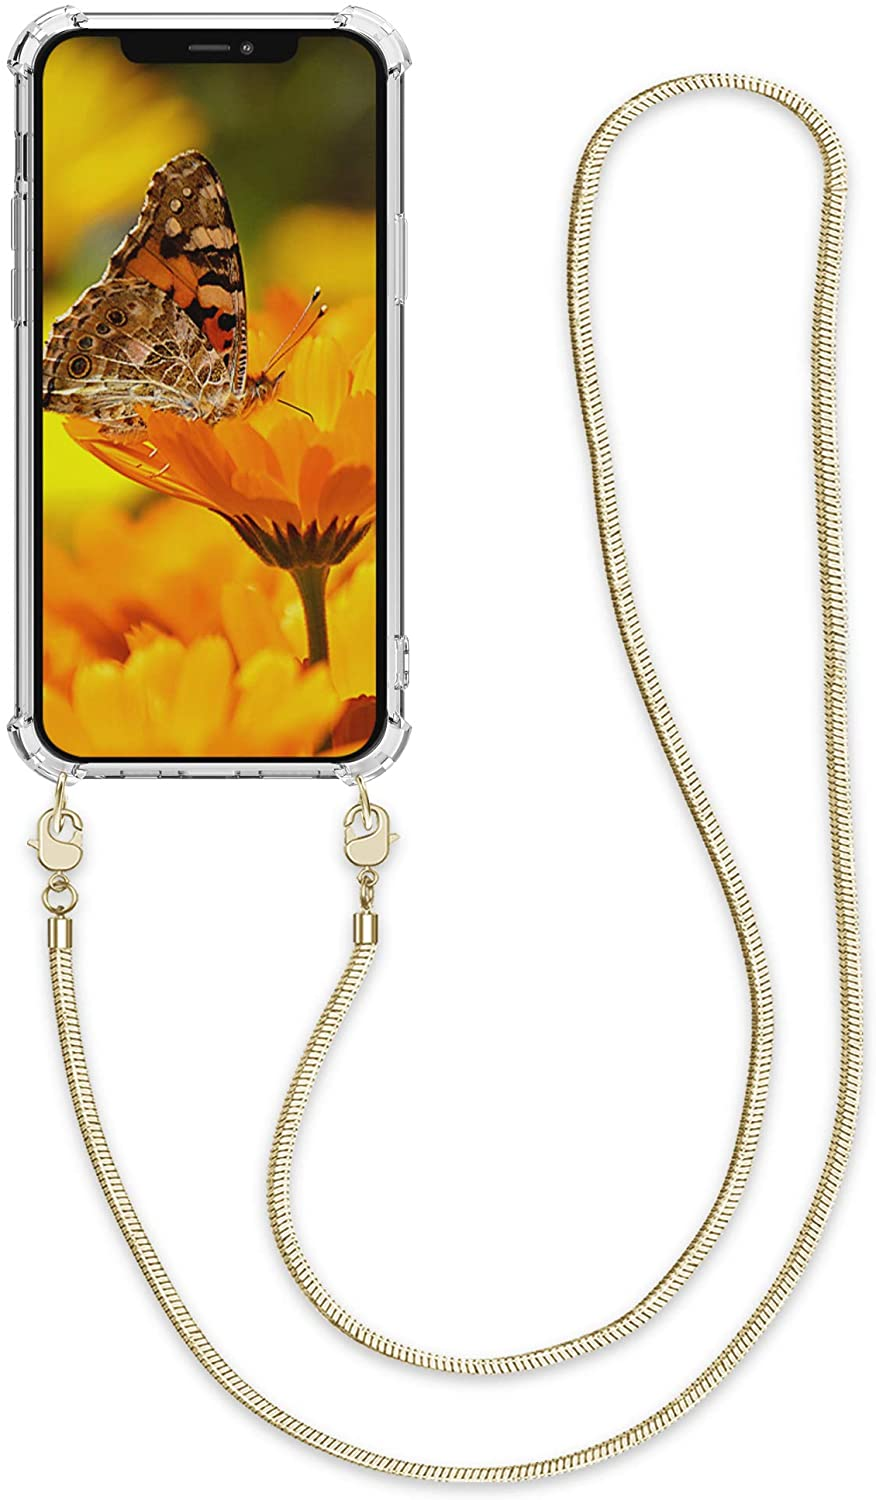 kwmobile Case Compatible with Apple iPhone 12 Pro Max - Crossbody Case Clear Transparent TPU Phone Cover with Metal Chain Strap - Transparent/Gold